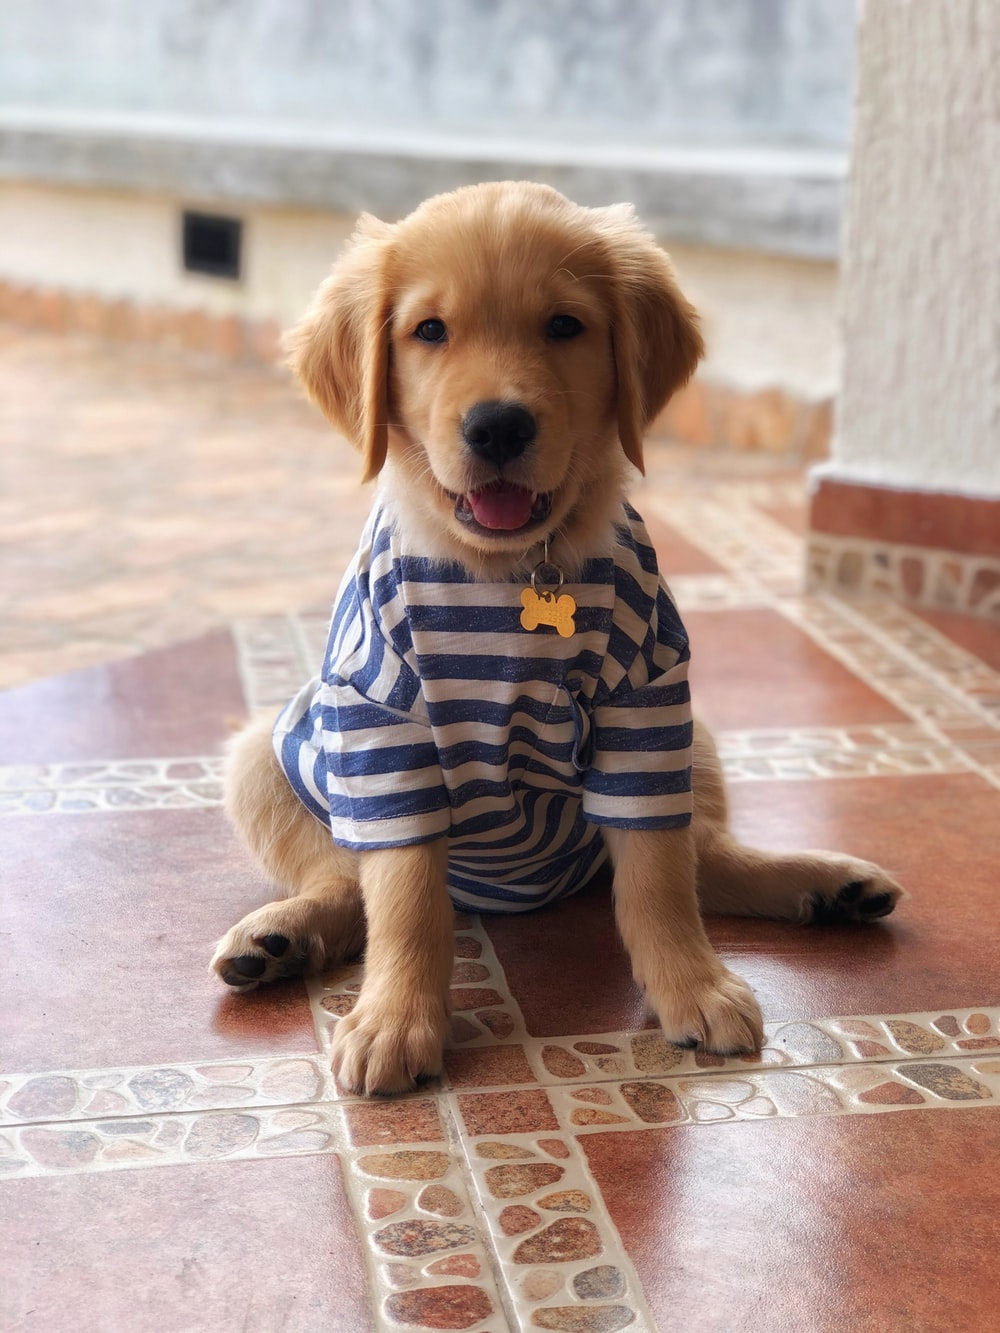 brown short coated dog wearing blue and white striped shirt